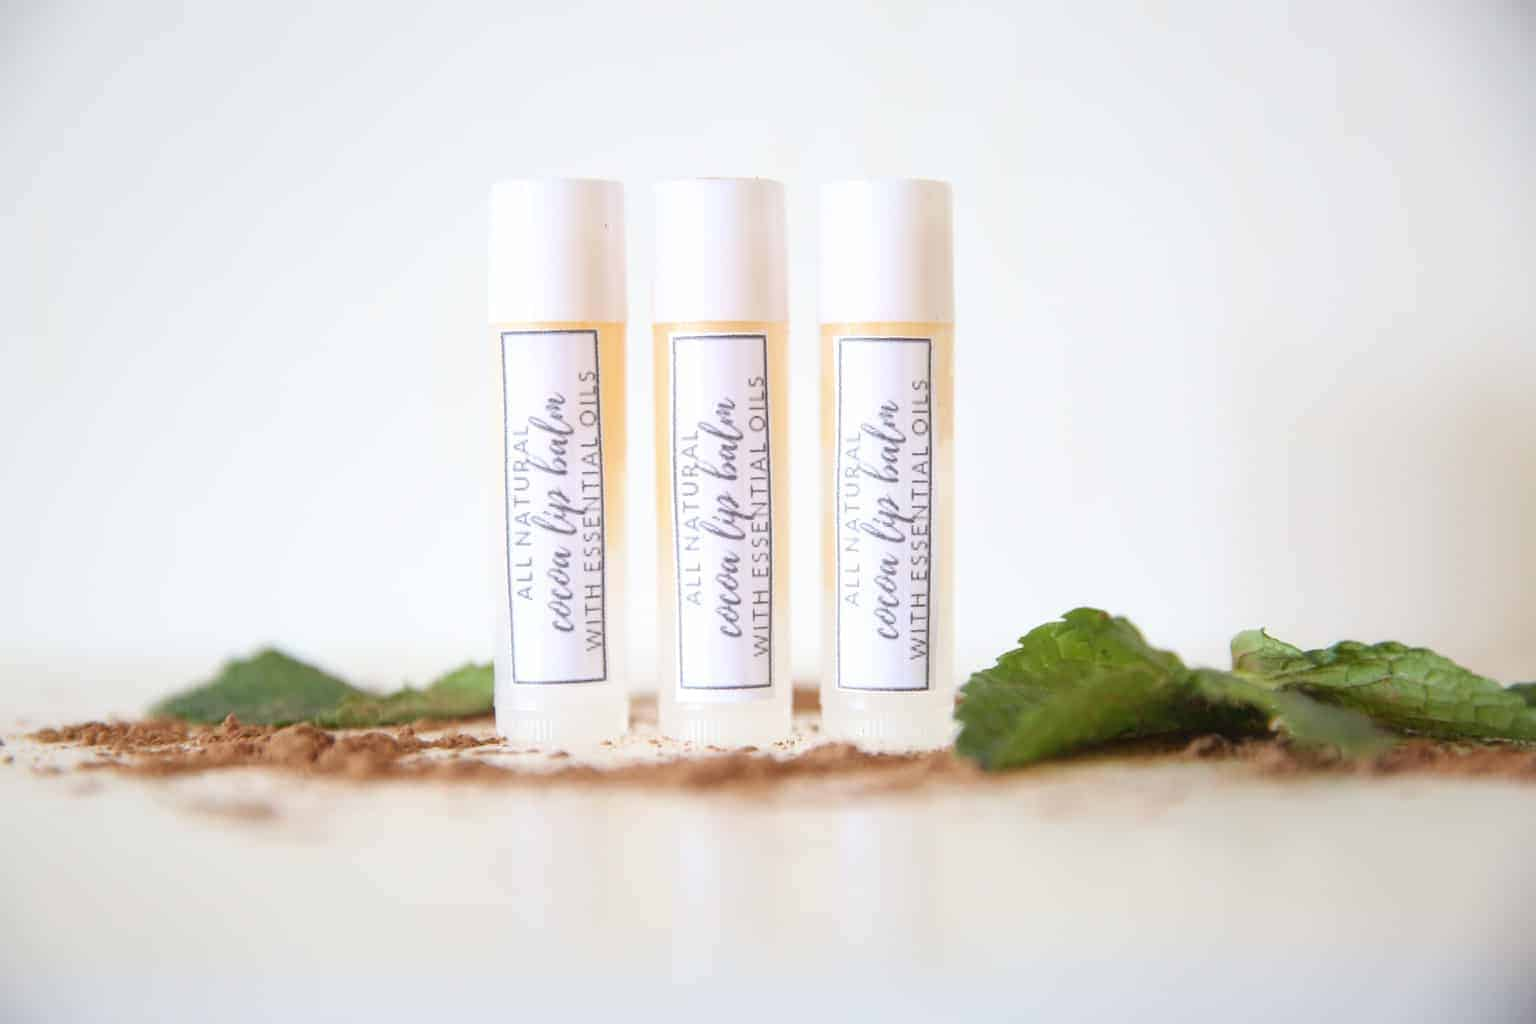 Diy Lip Balm Flavors Diy Lip Balm With Essential Oils Our Oily House